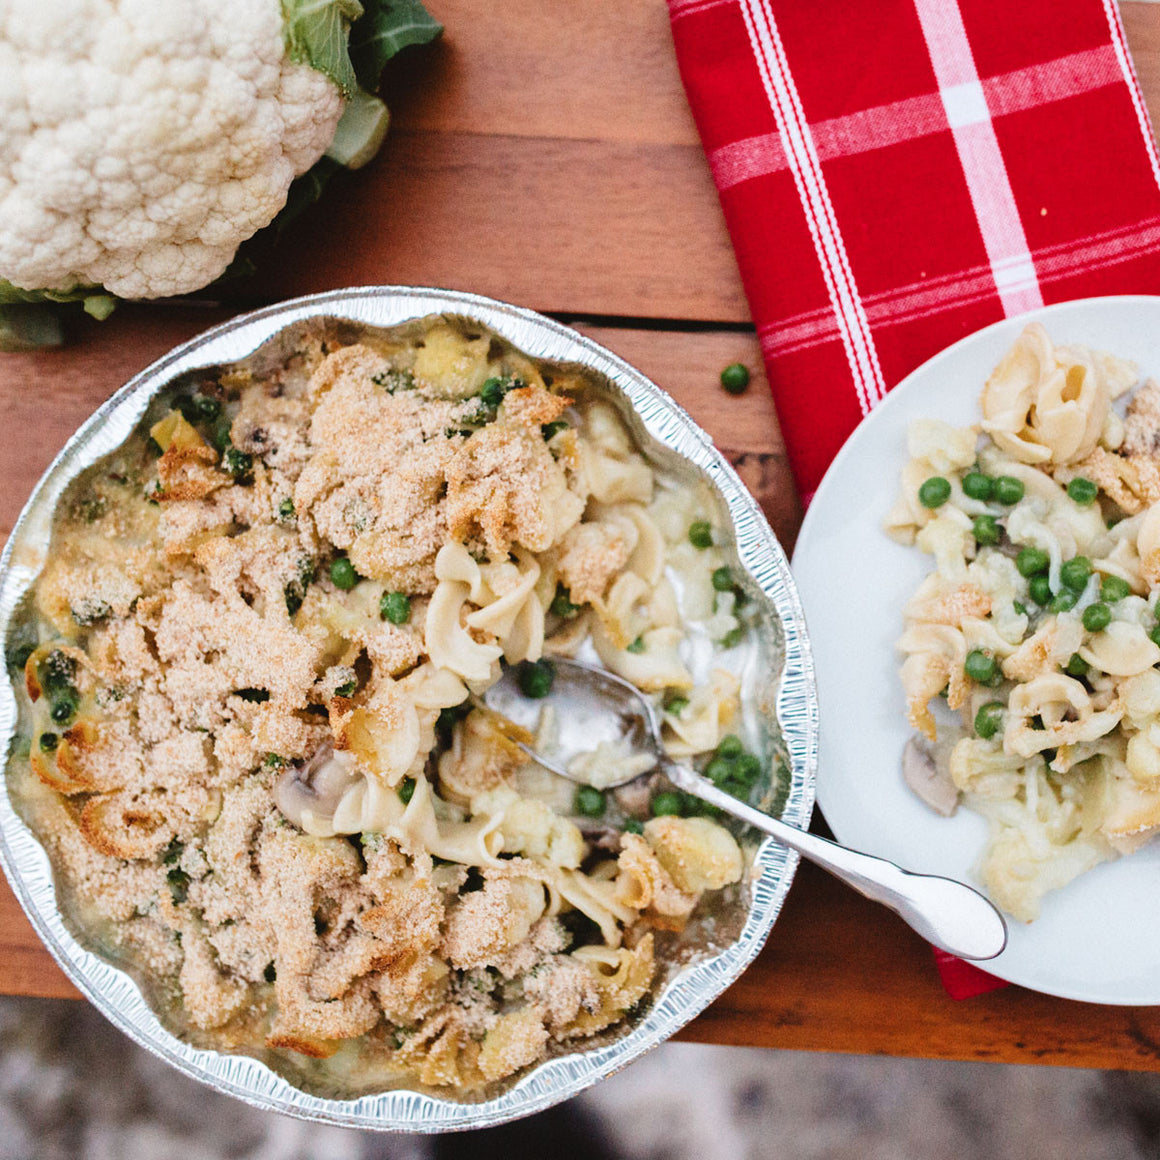 Cauliflower tetrazzini